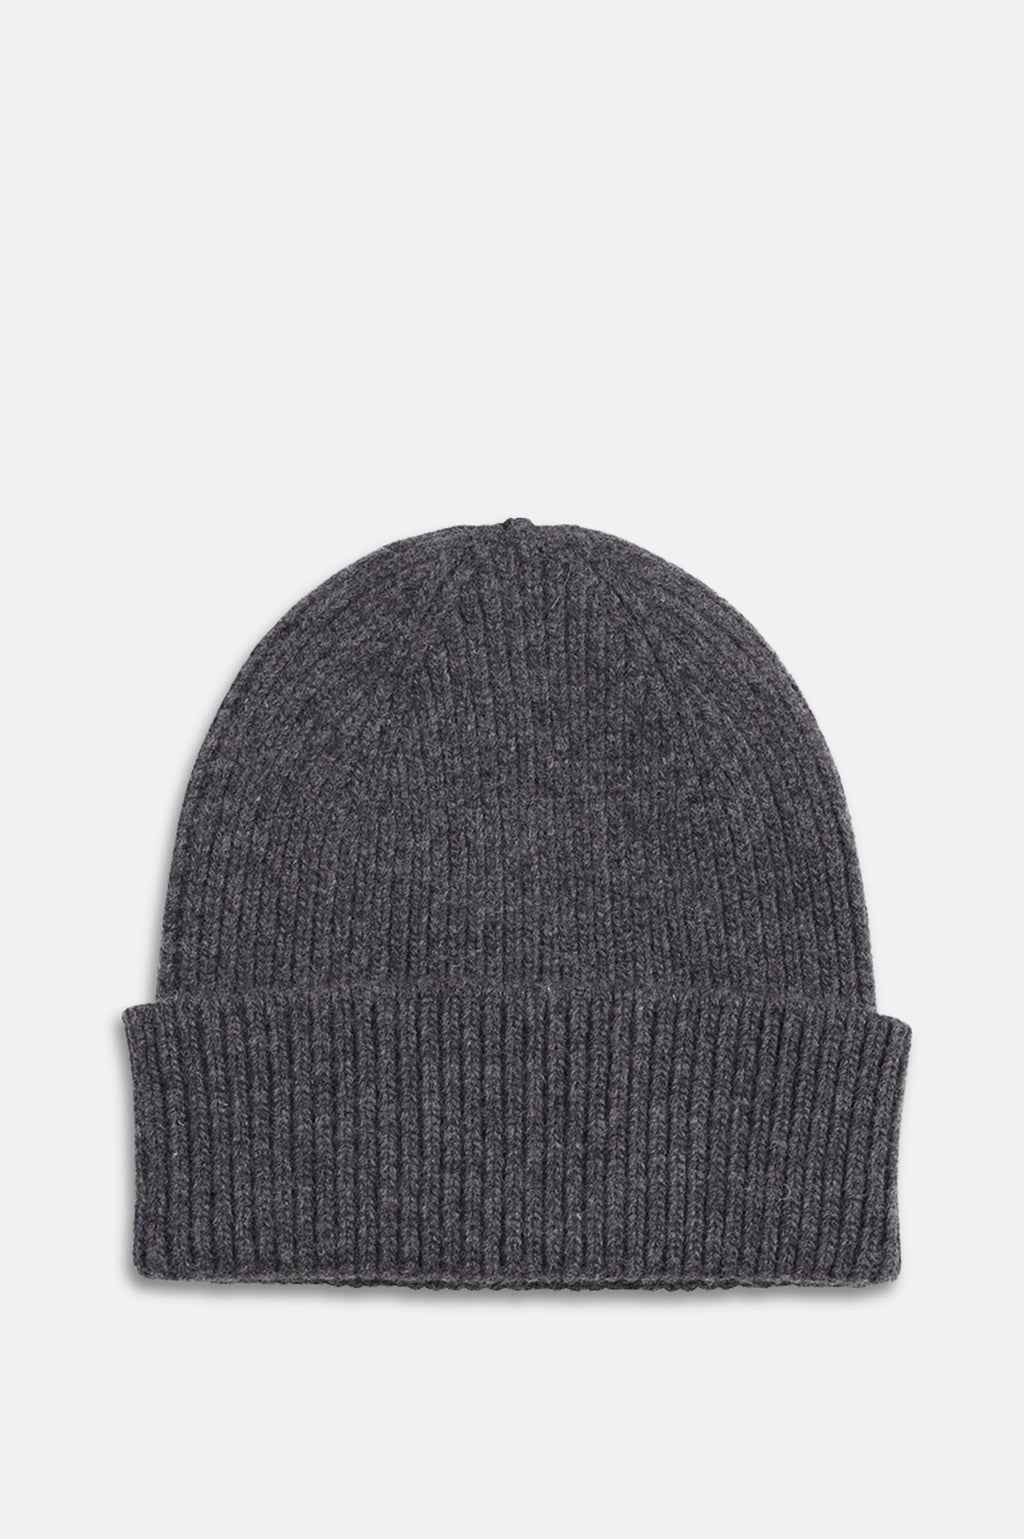 ReMade Wool Beanie Hat in Lava Grey